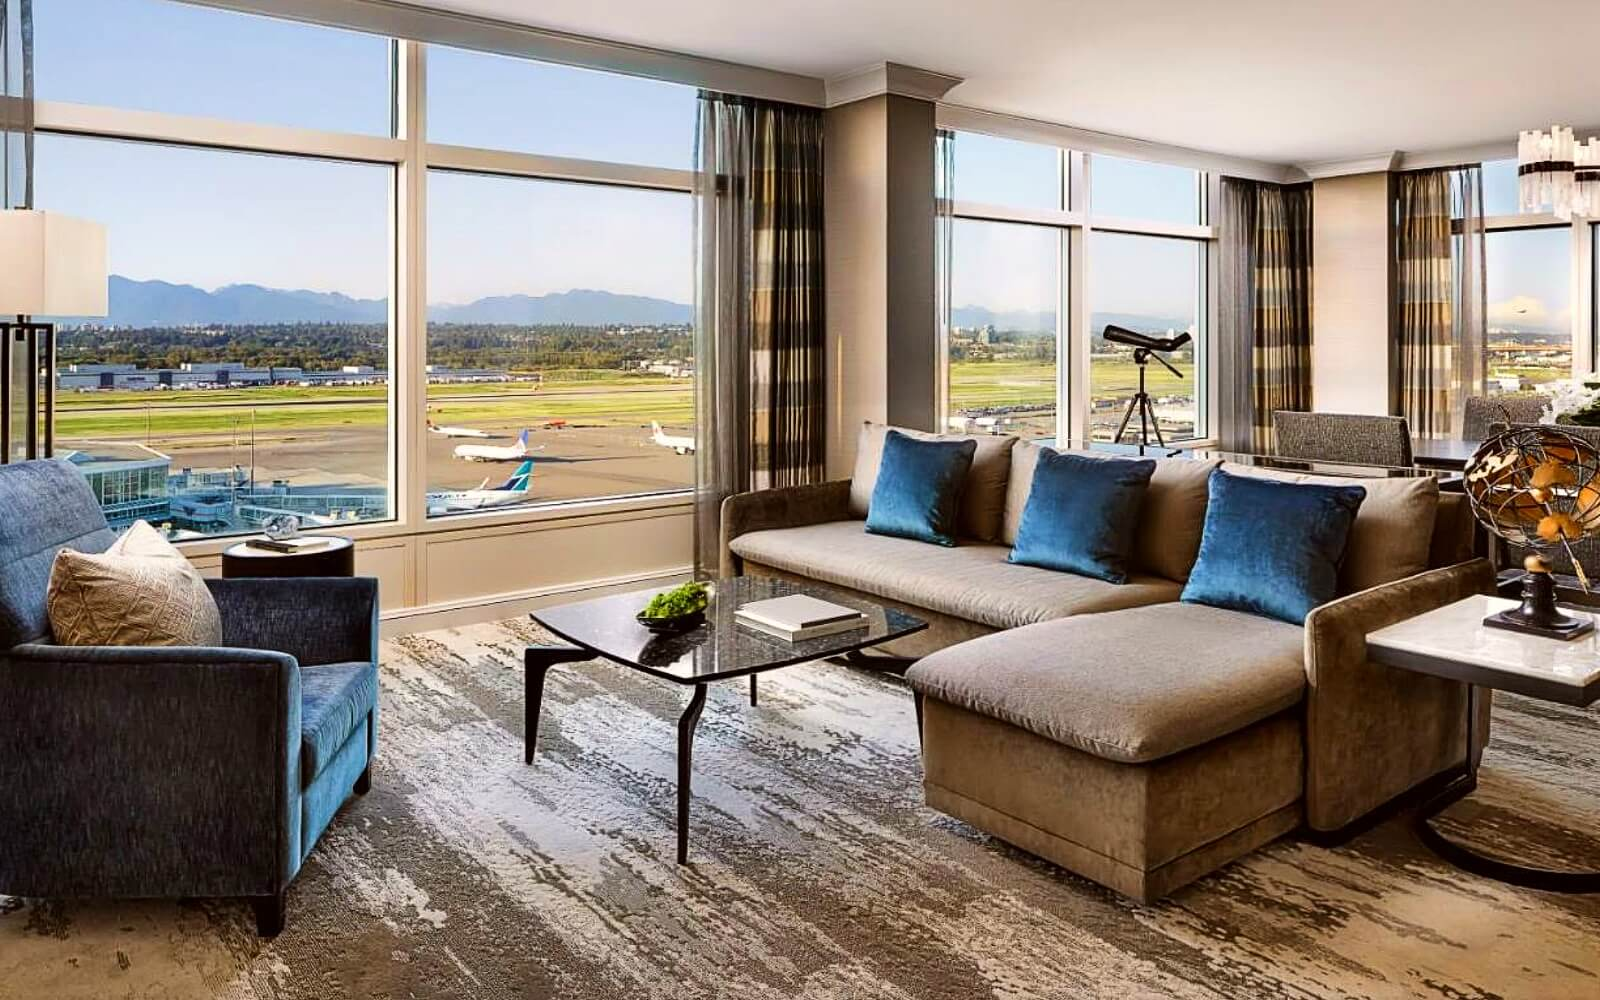 The view from a suite at the Fairmont Gold Vancouver Airport